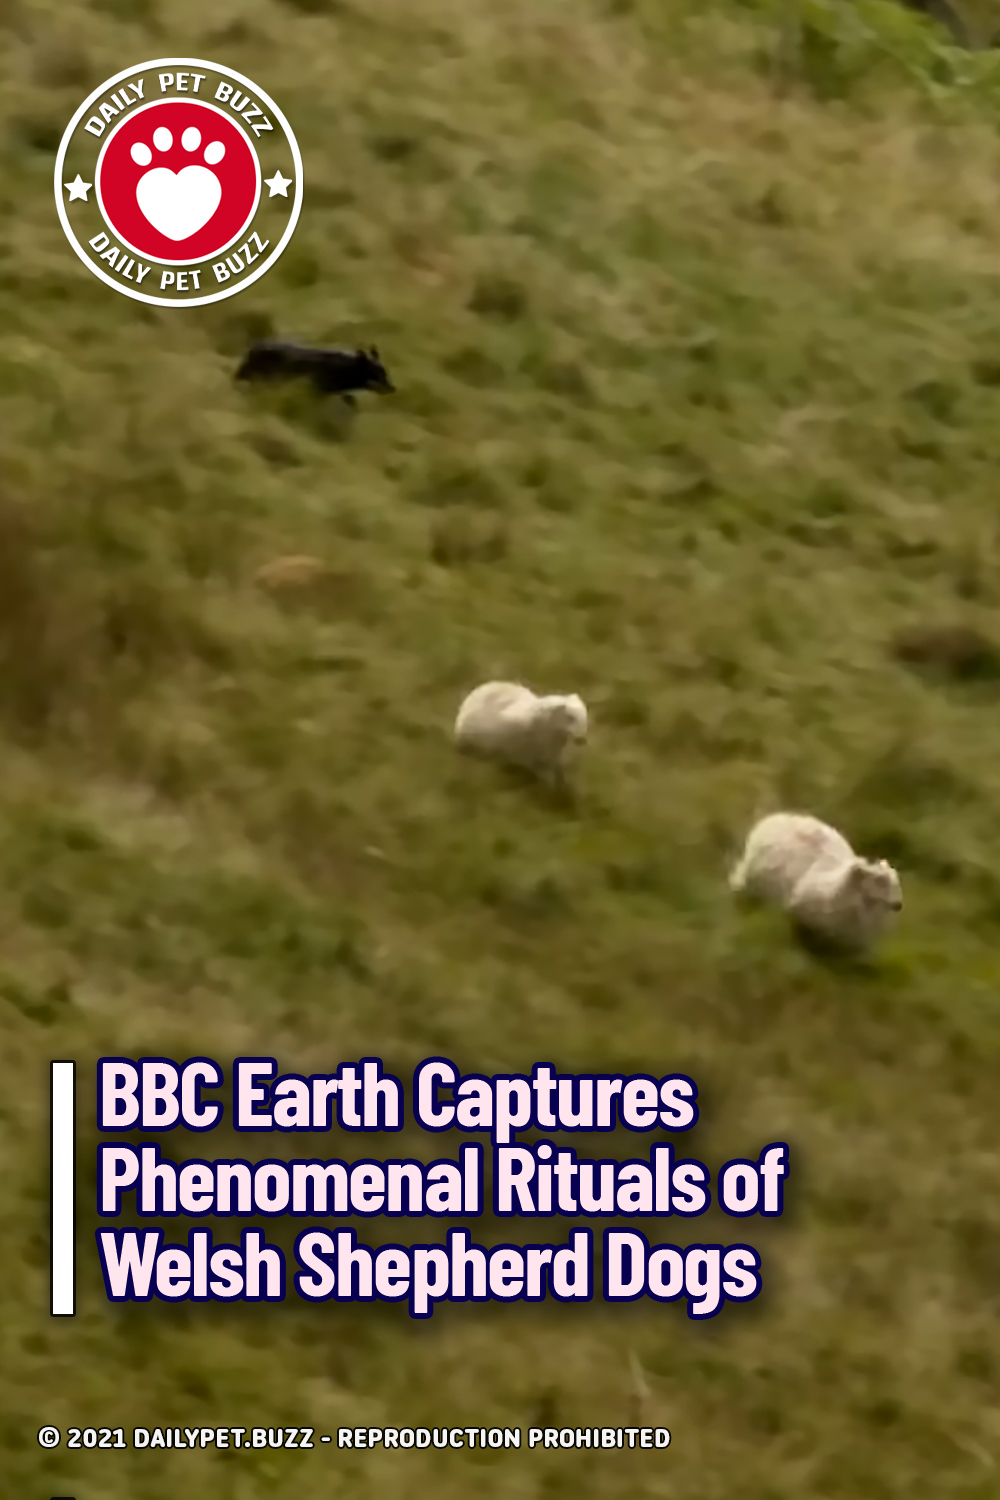 BBC Earth Captures Phenomenal Rituals of Welsh Shepherd Dogs